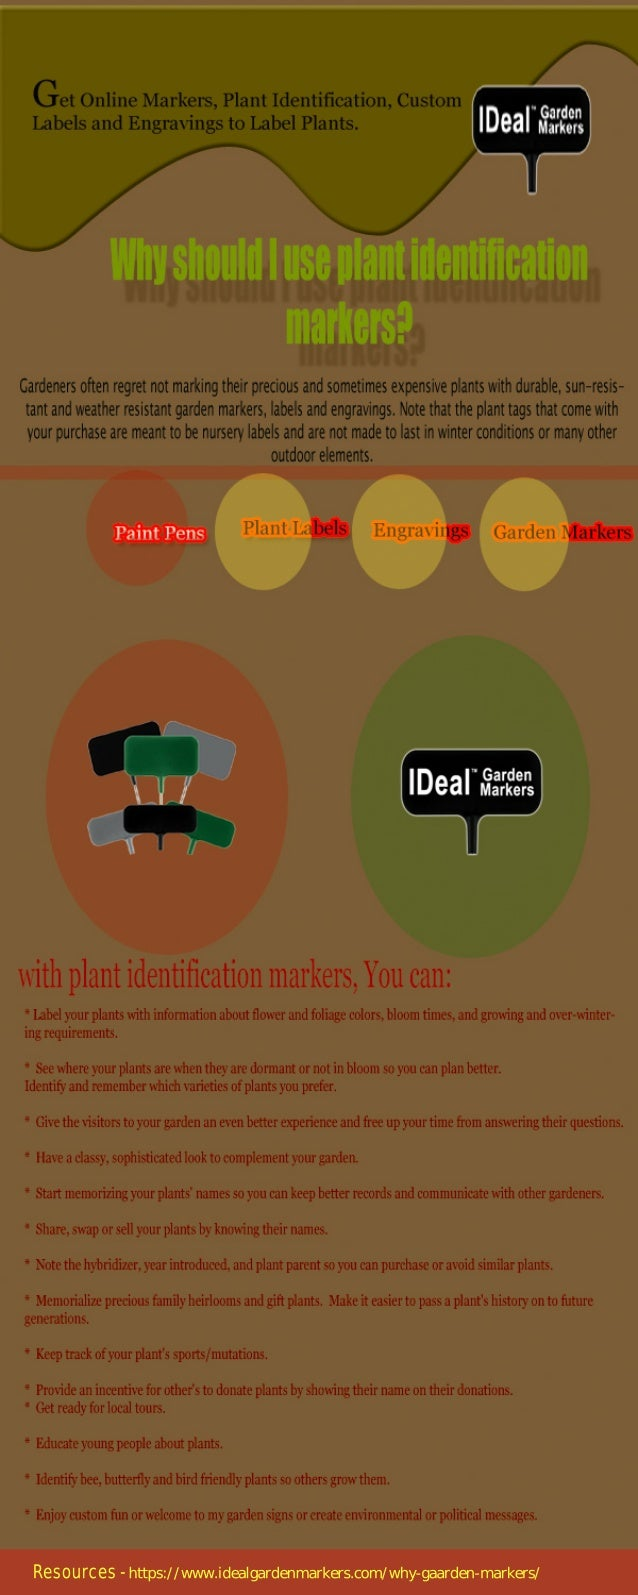 Why should I use Plant Identification Markers?